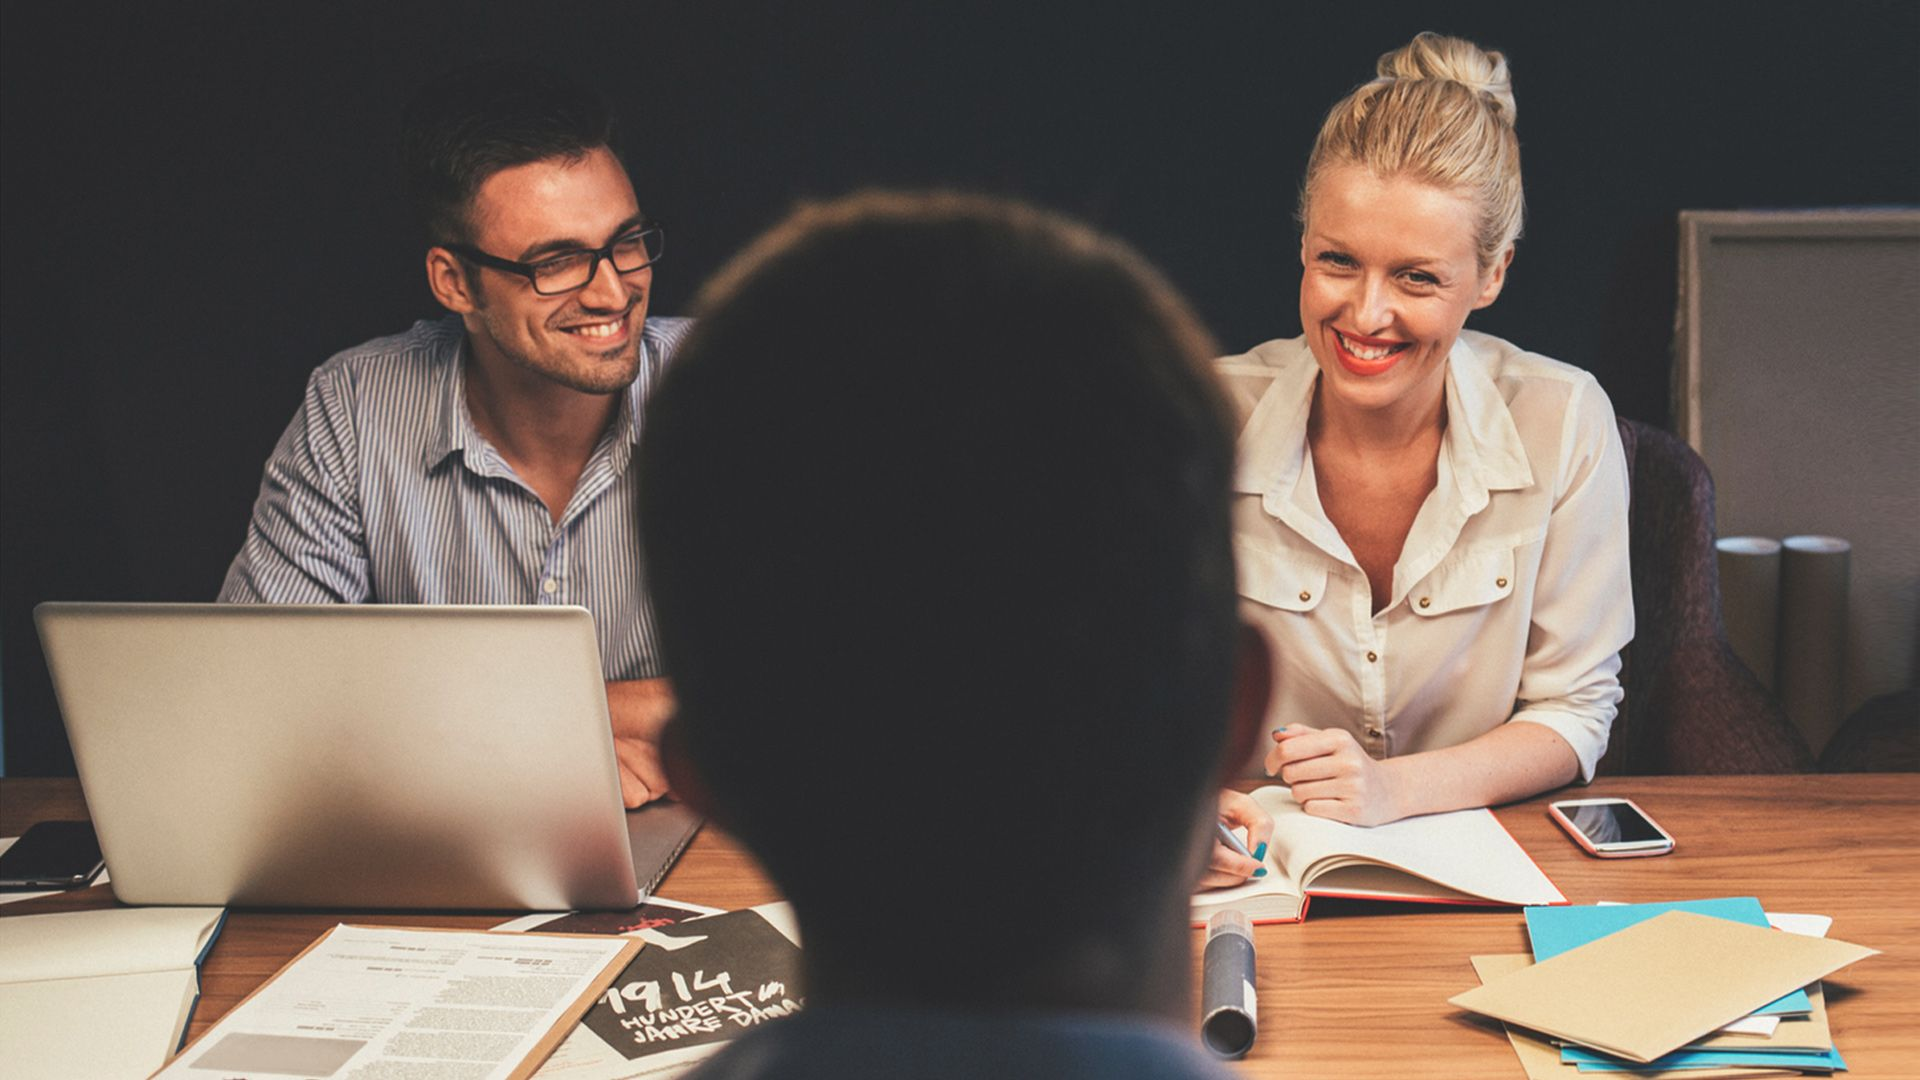 The Social Introvert Rocking the Job Interview